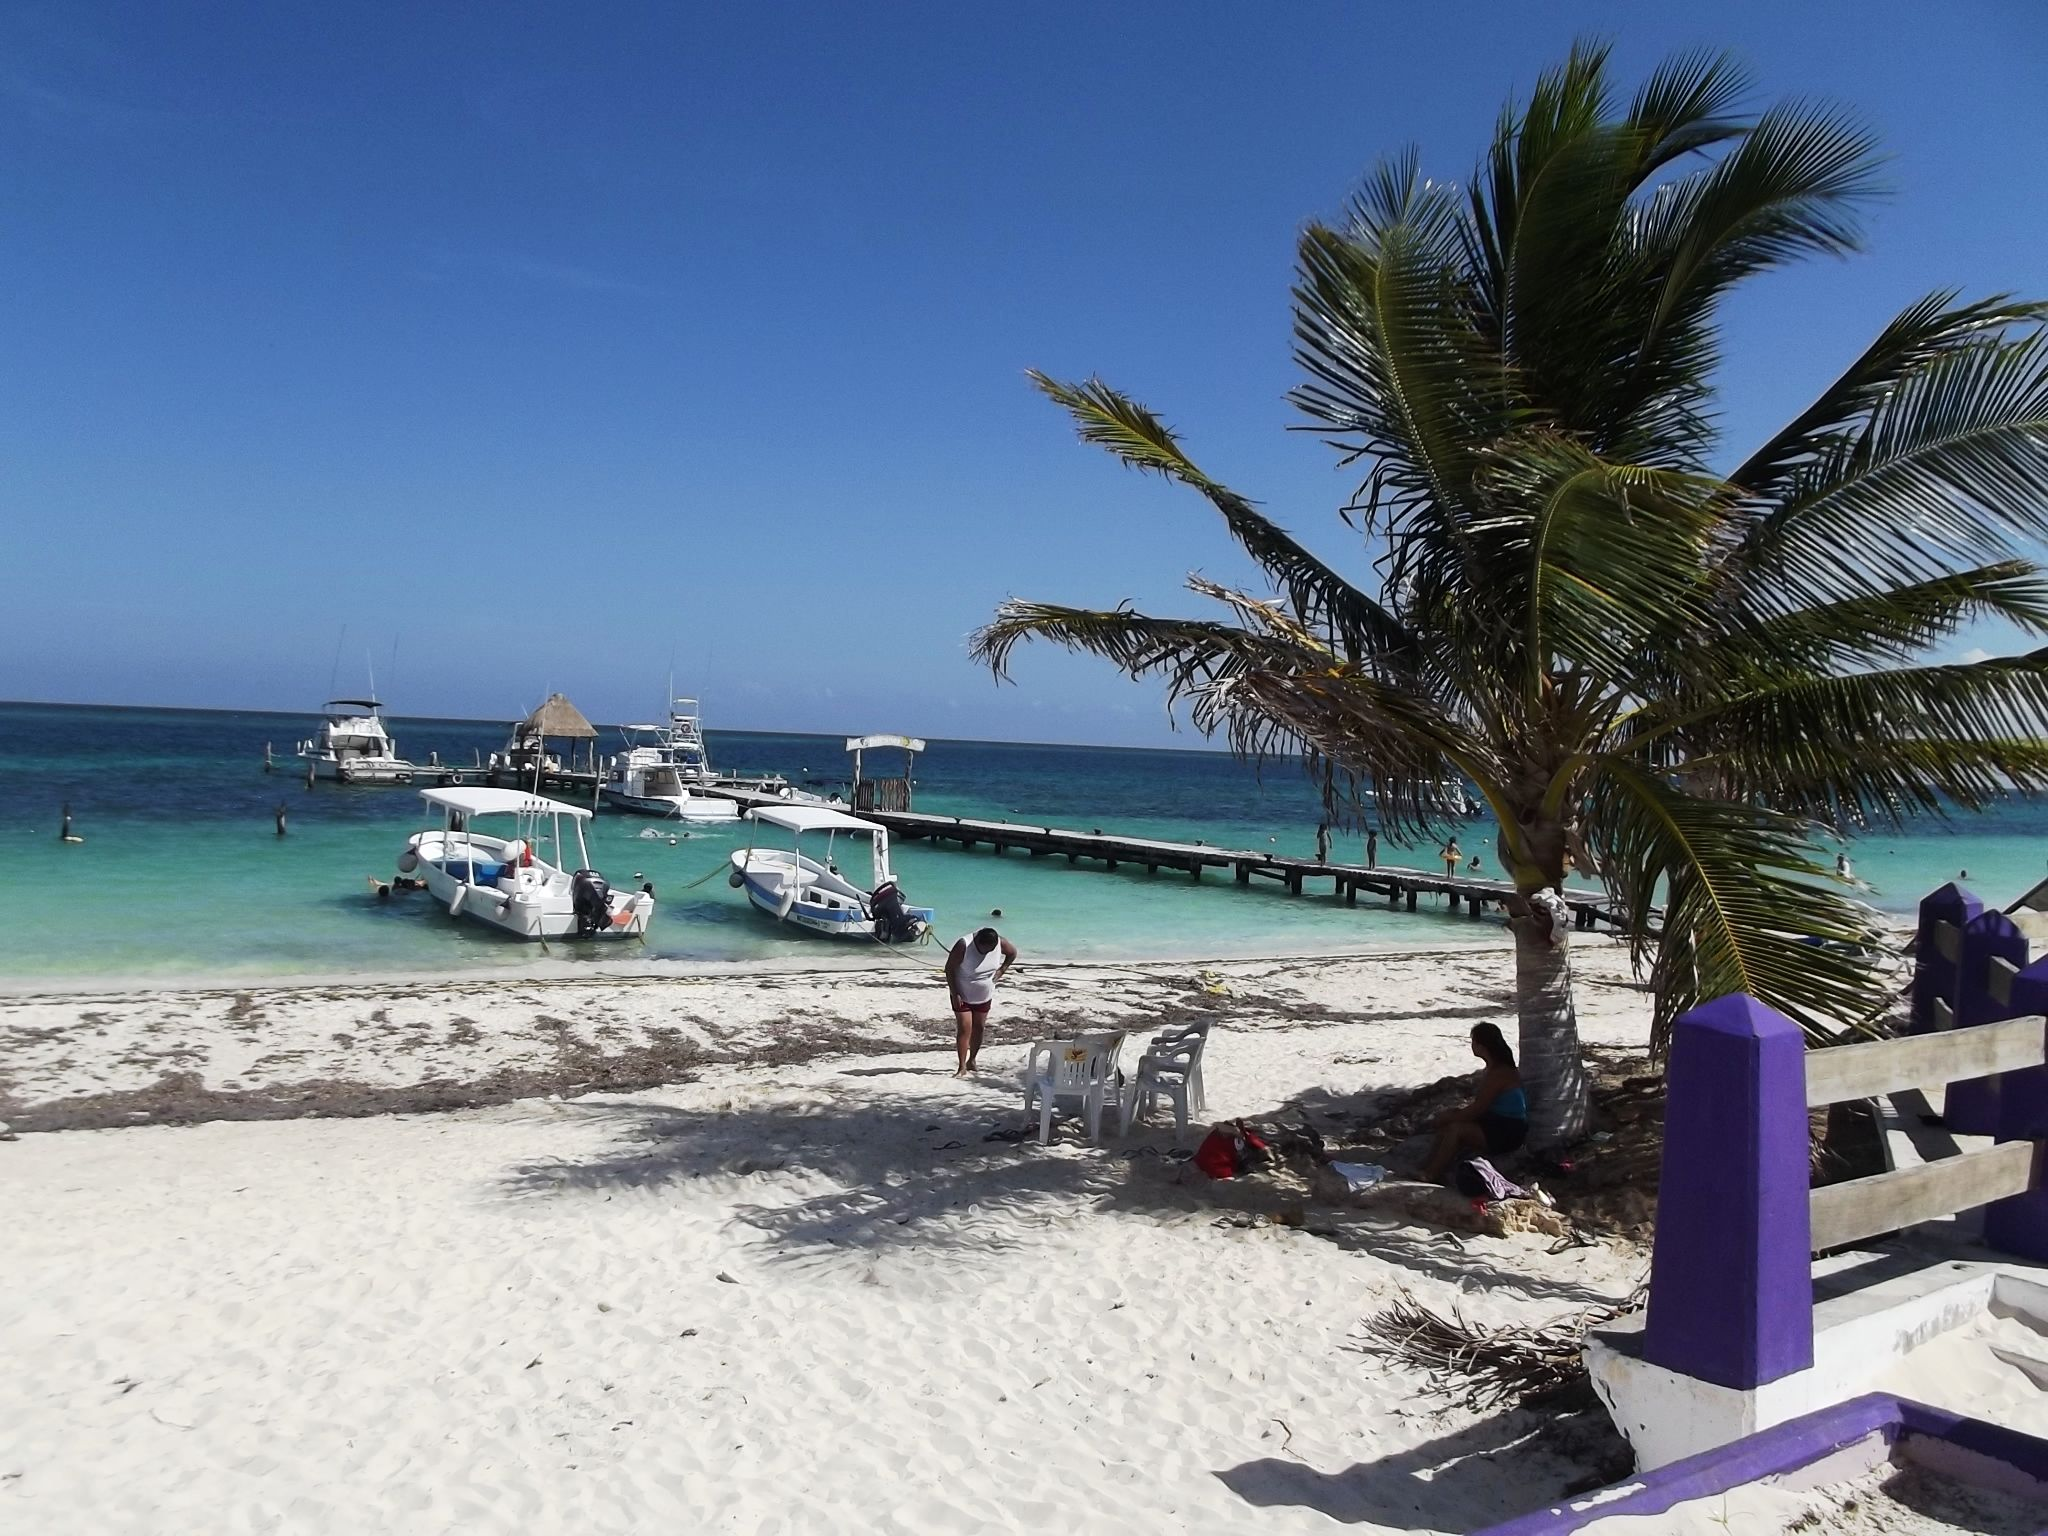 Another picture of Puerto Morelos, Mexico. just outside Cancun. Aug 2012